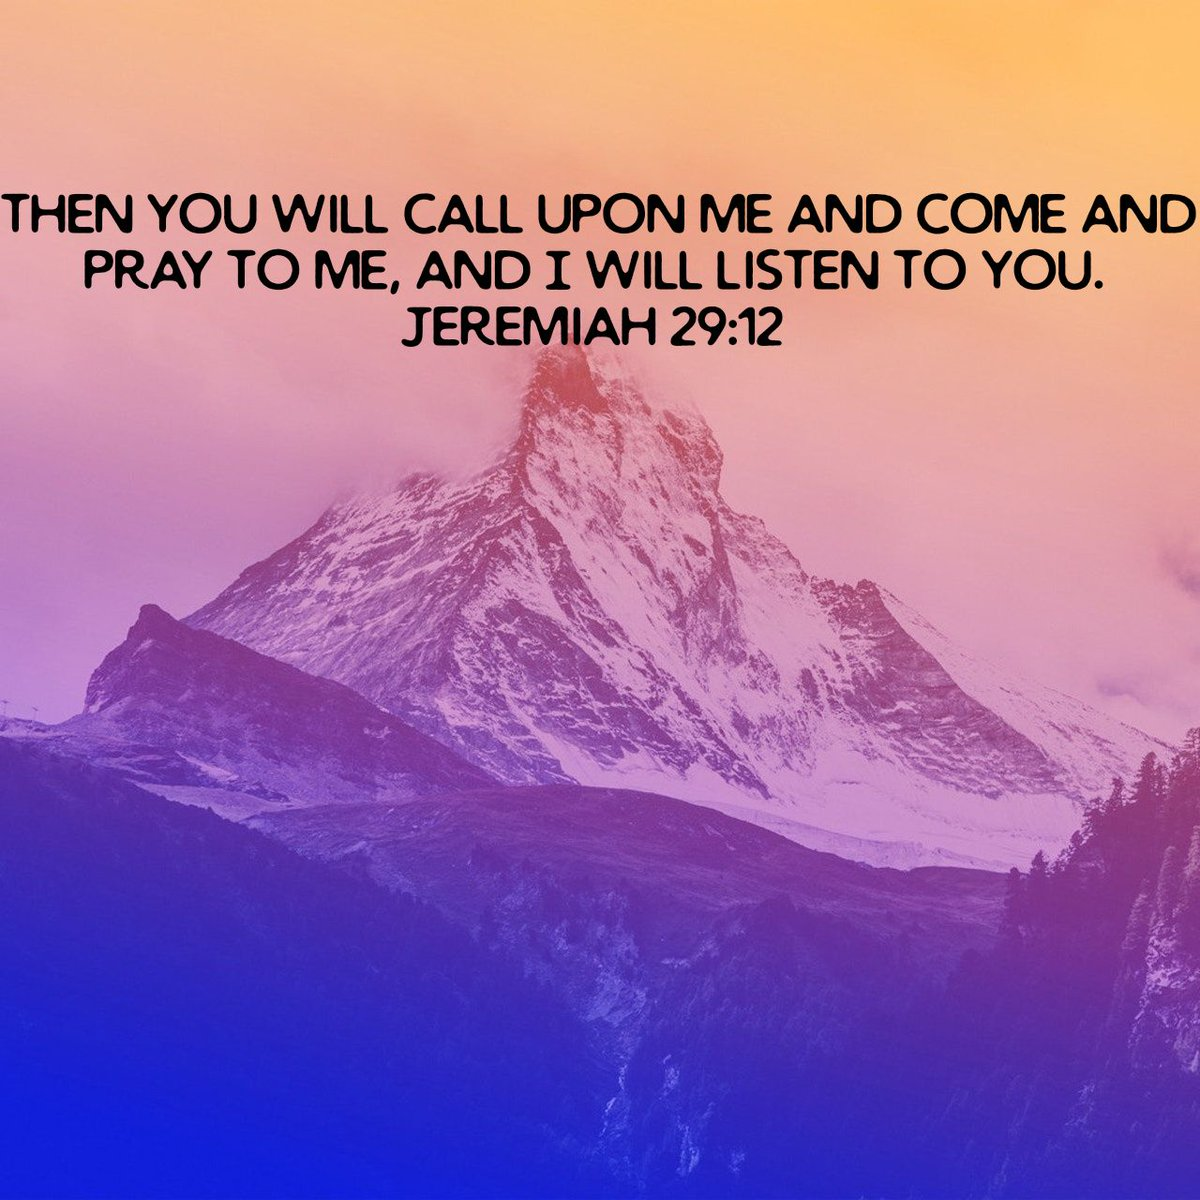 Then you will call upon Me and come and pray to Me, and I will listen to you. Jeremiah 29:12 NA… #Jesus #WorldPoetryDay #FridayMotivation #FridayFeeling #FridayWisdom <br>http://pic.twitter.com/R4jAB1f96e